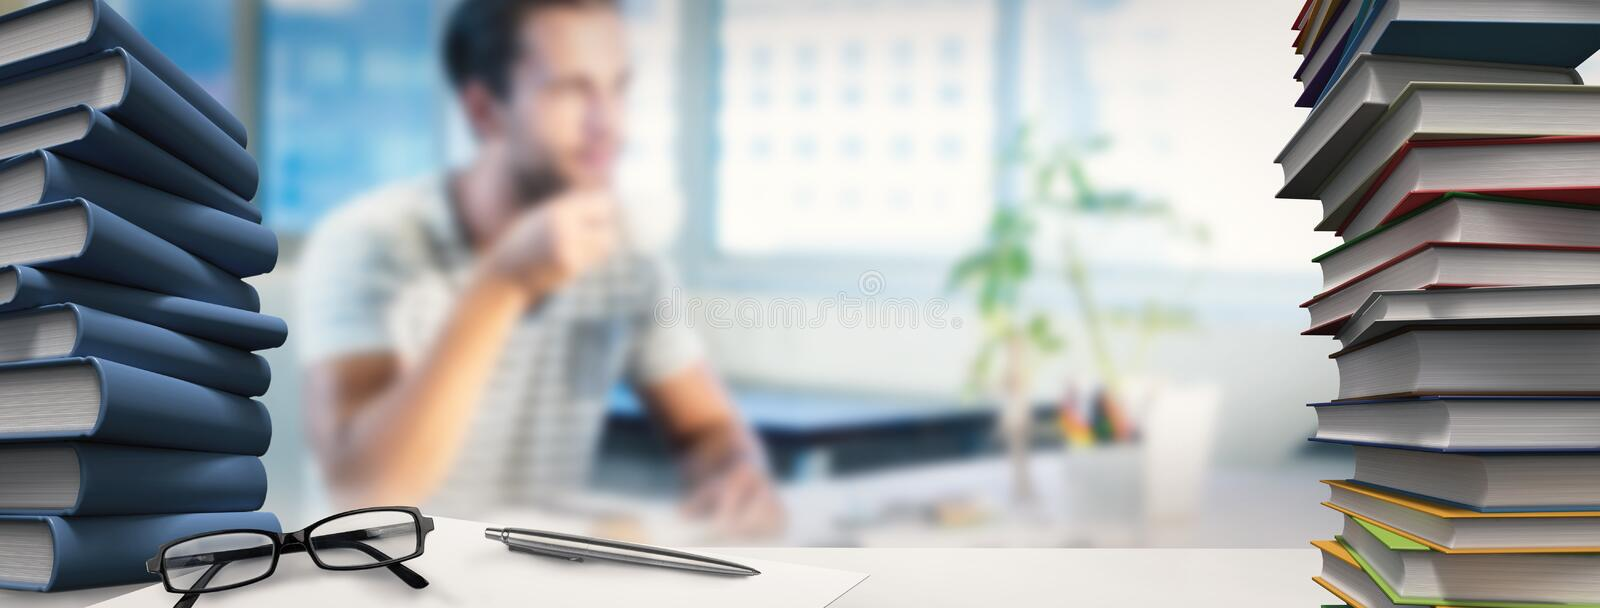 Composite image of desk stock images